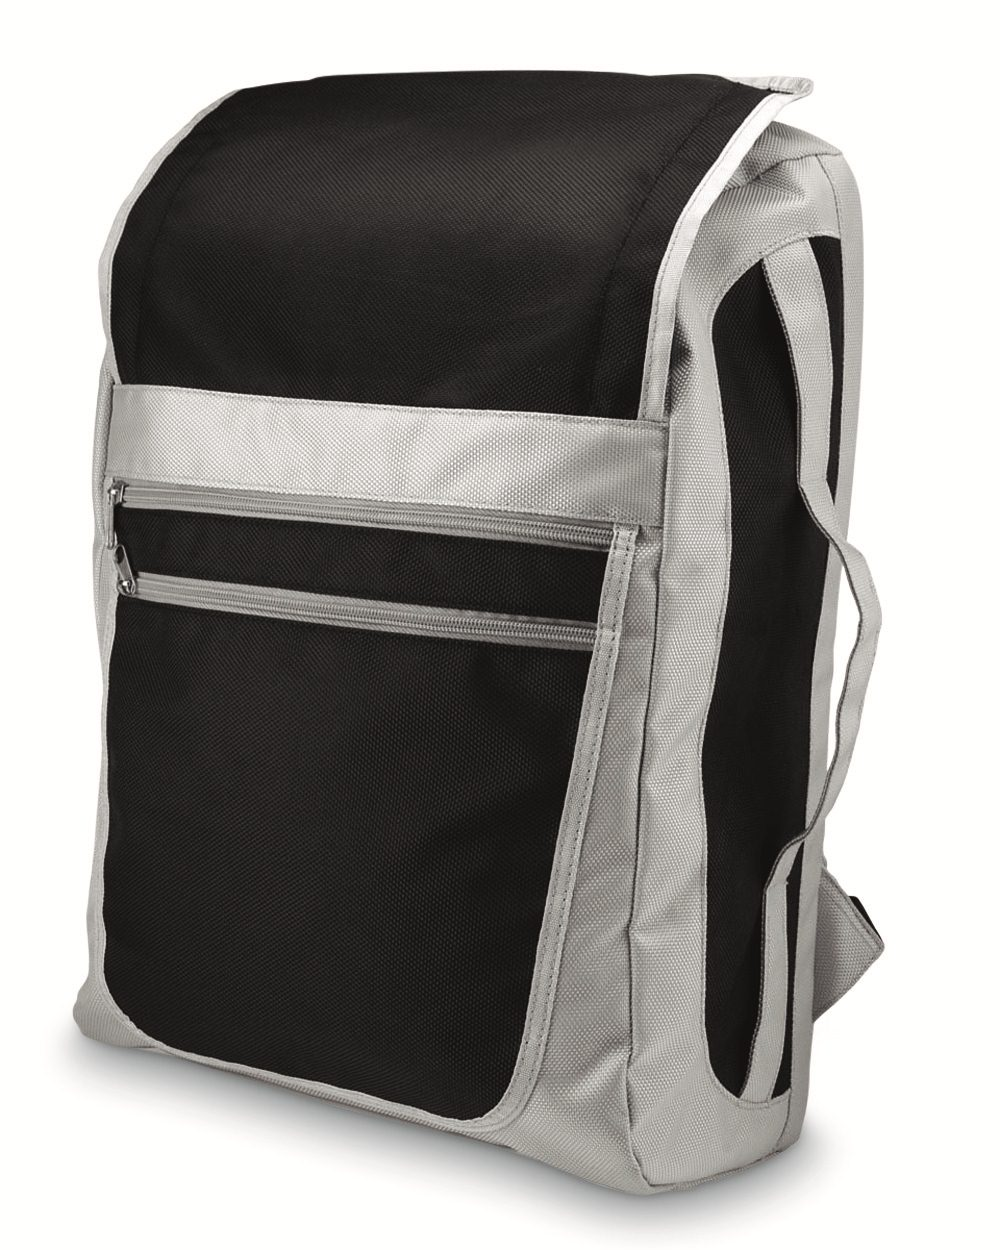 Valubag 17 Inch Laptop Backpack - VB1156